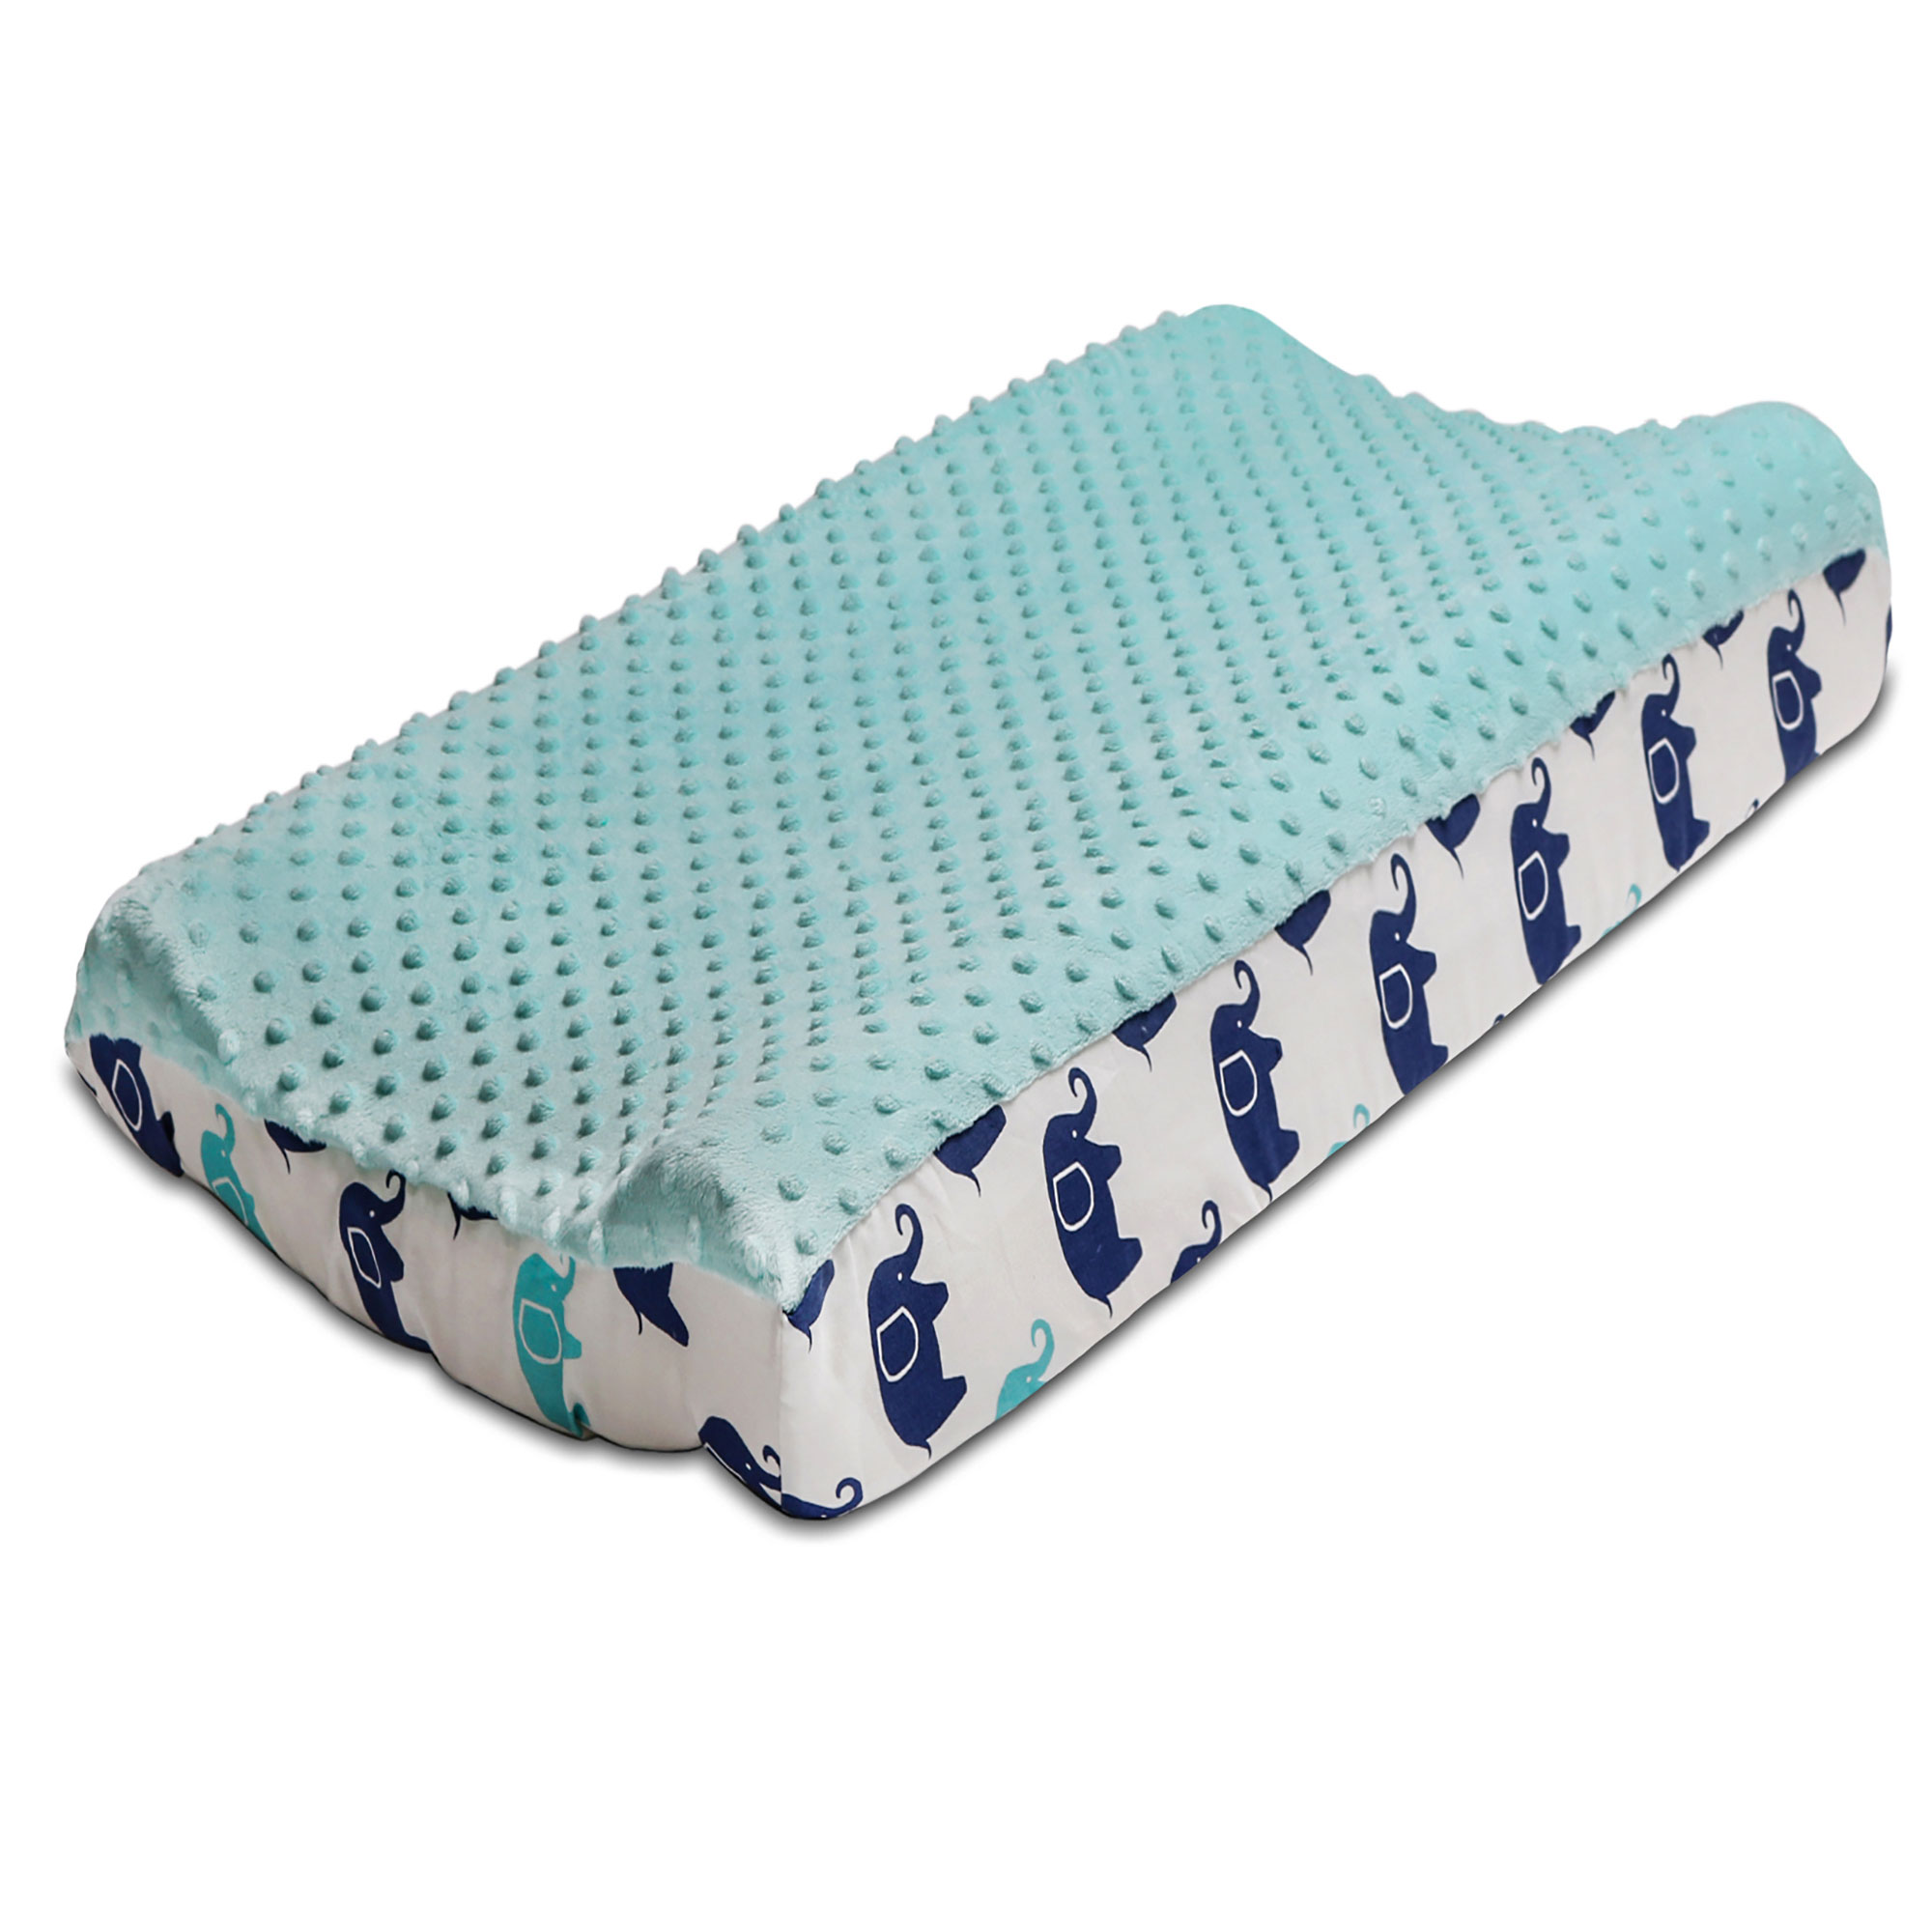 The Peanut Shell Baby Changing Pad Cover - Mosaic Collection - Fits 32 by 16 Inch Pad